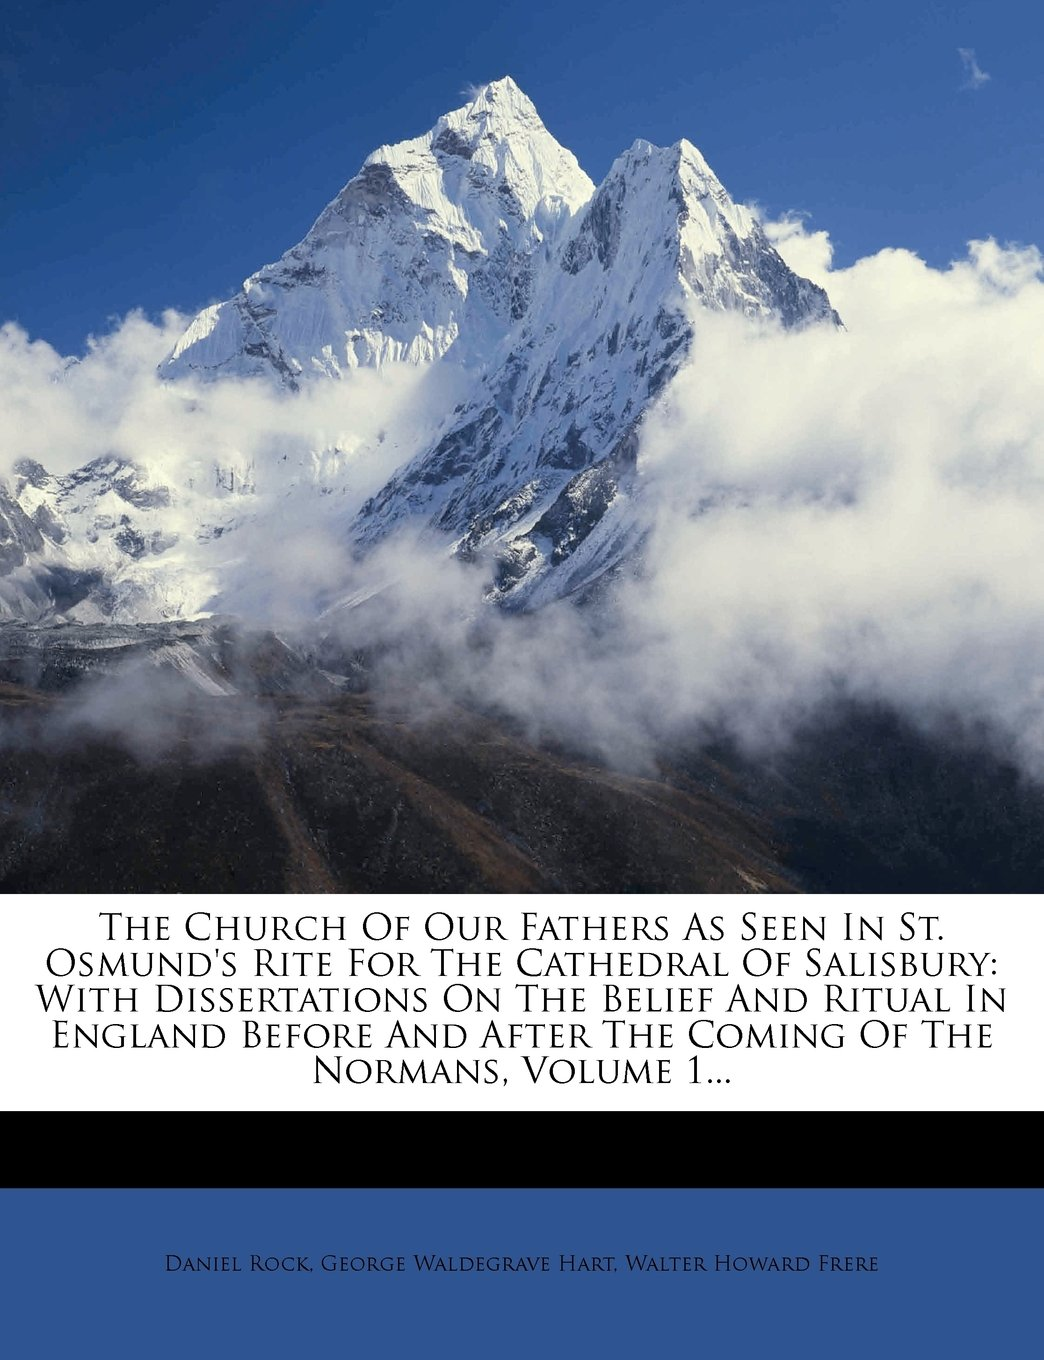 Download The Church Of Our Fathers As Seen In St. Osmund's Rite For The Cathedral Of Salisbury: With Dissertations On The Belief And Ritual In England Before And After The Coming Of The Normans, Volume 1... pdf epub